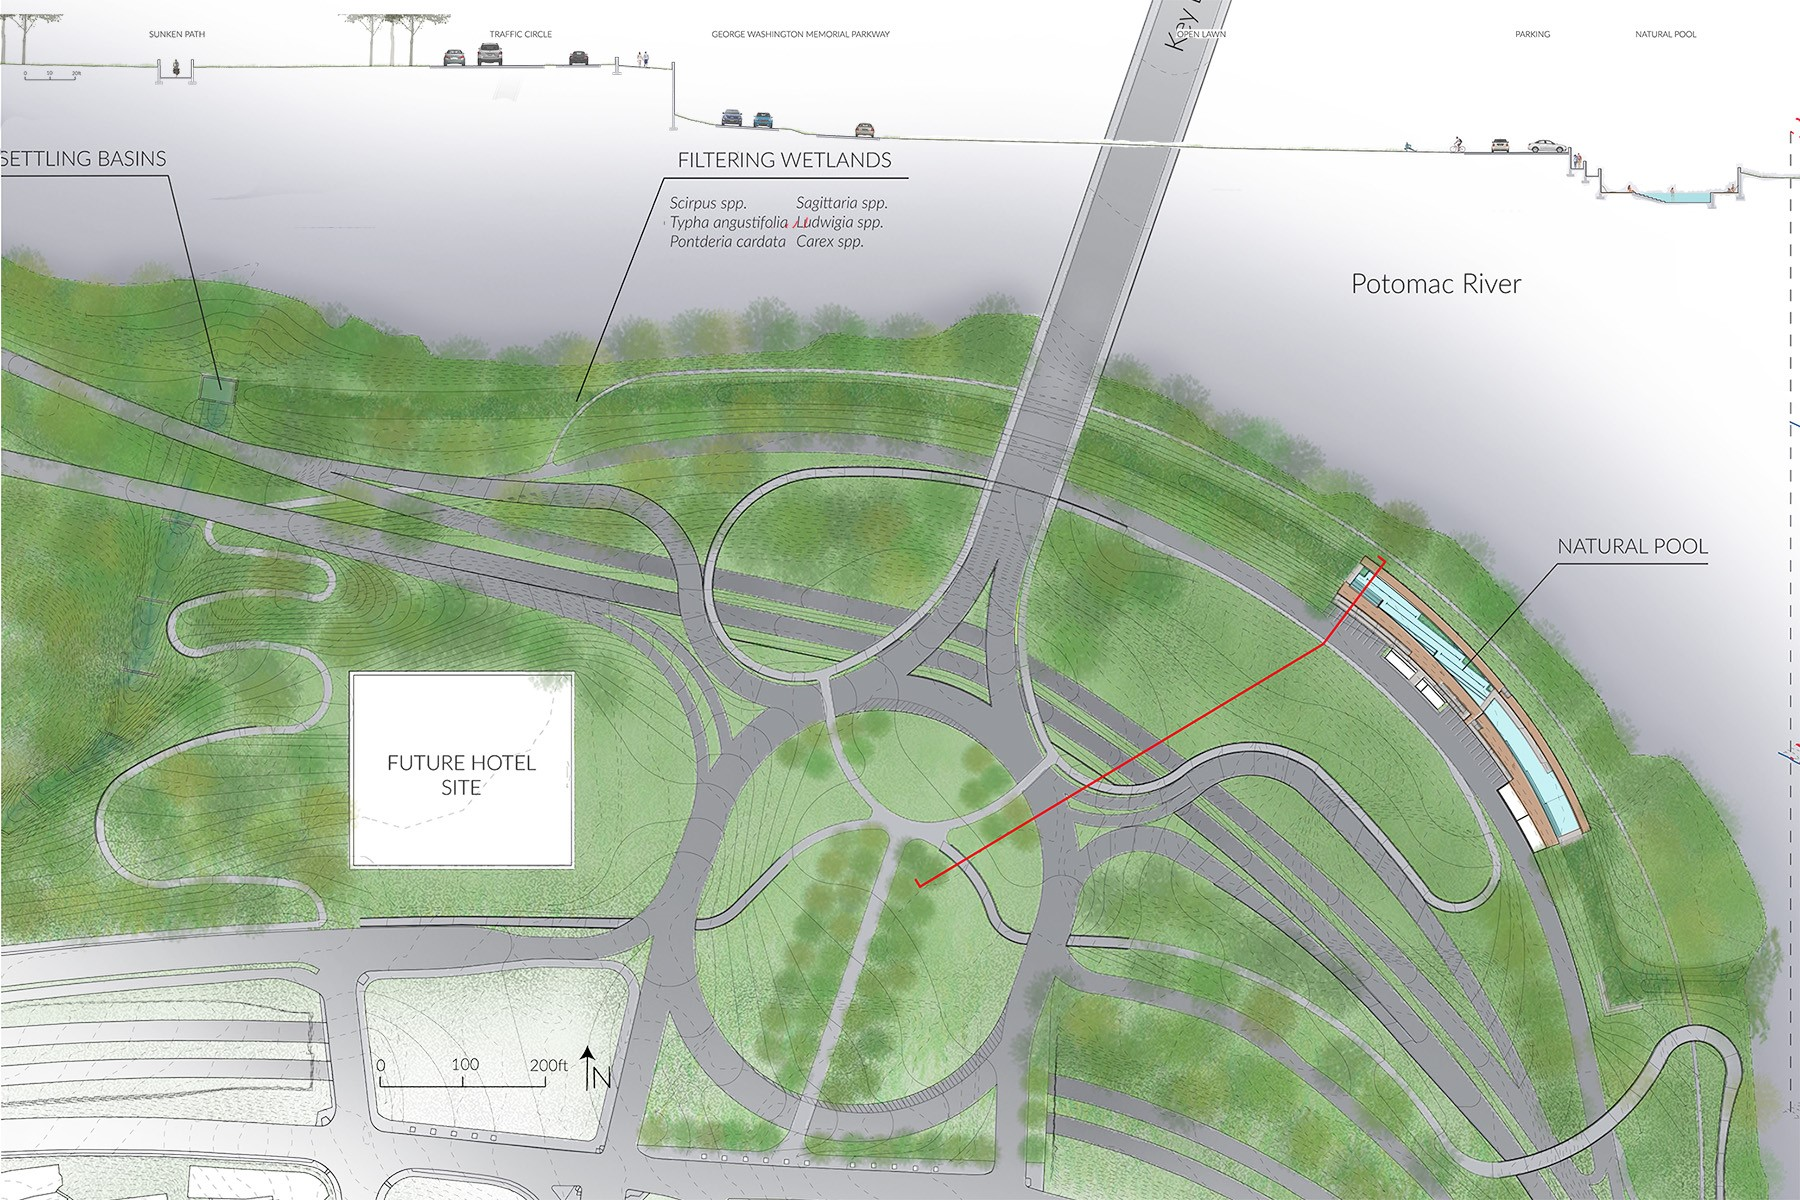 Virginia Tech Students Work With Arlington County Planners To Reimagine Rosslyn Waterfront